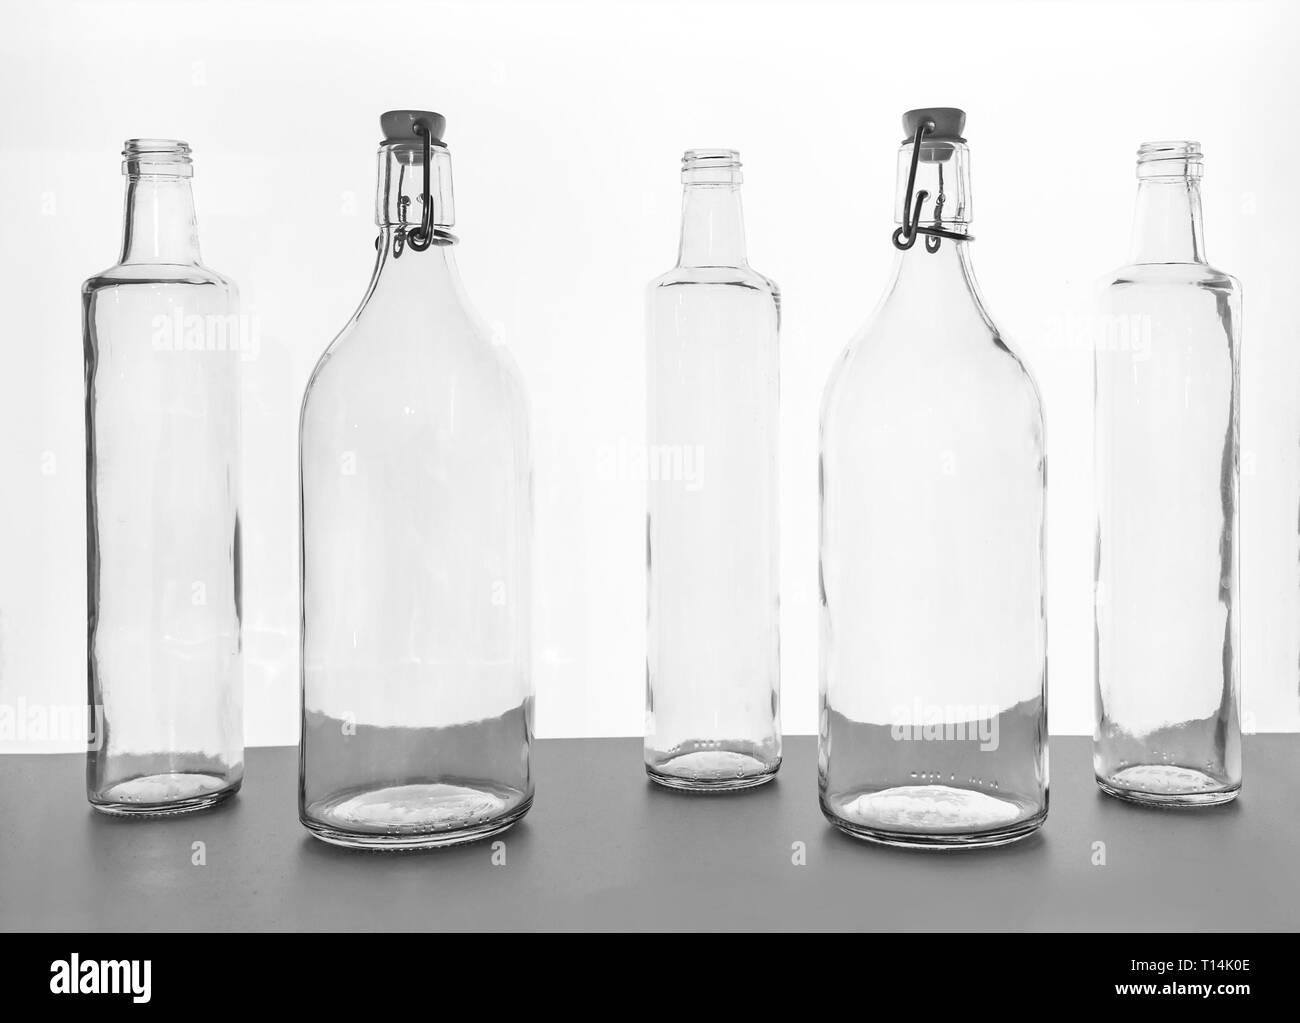 Empty transparent glass bottles silhouette on the white illuminate from behind background - Stock Image